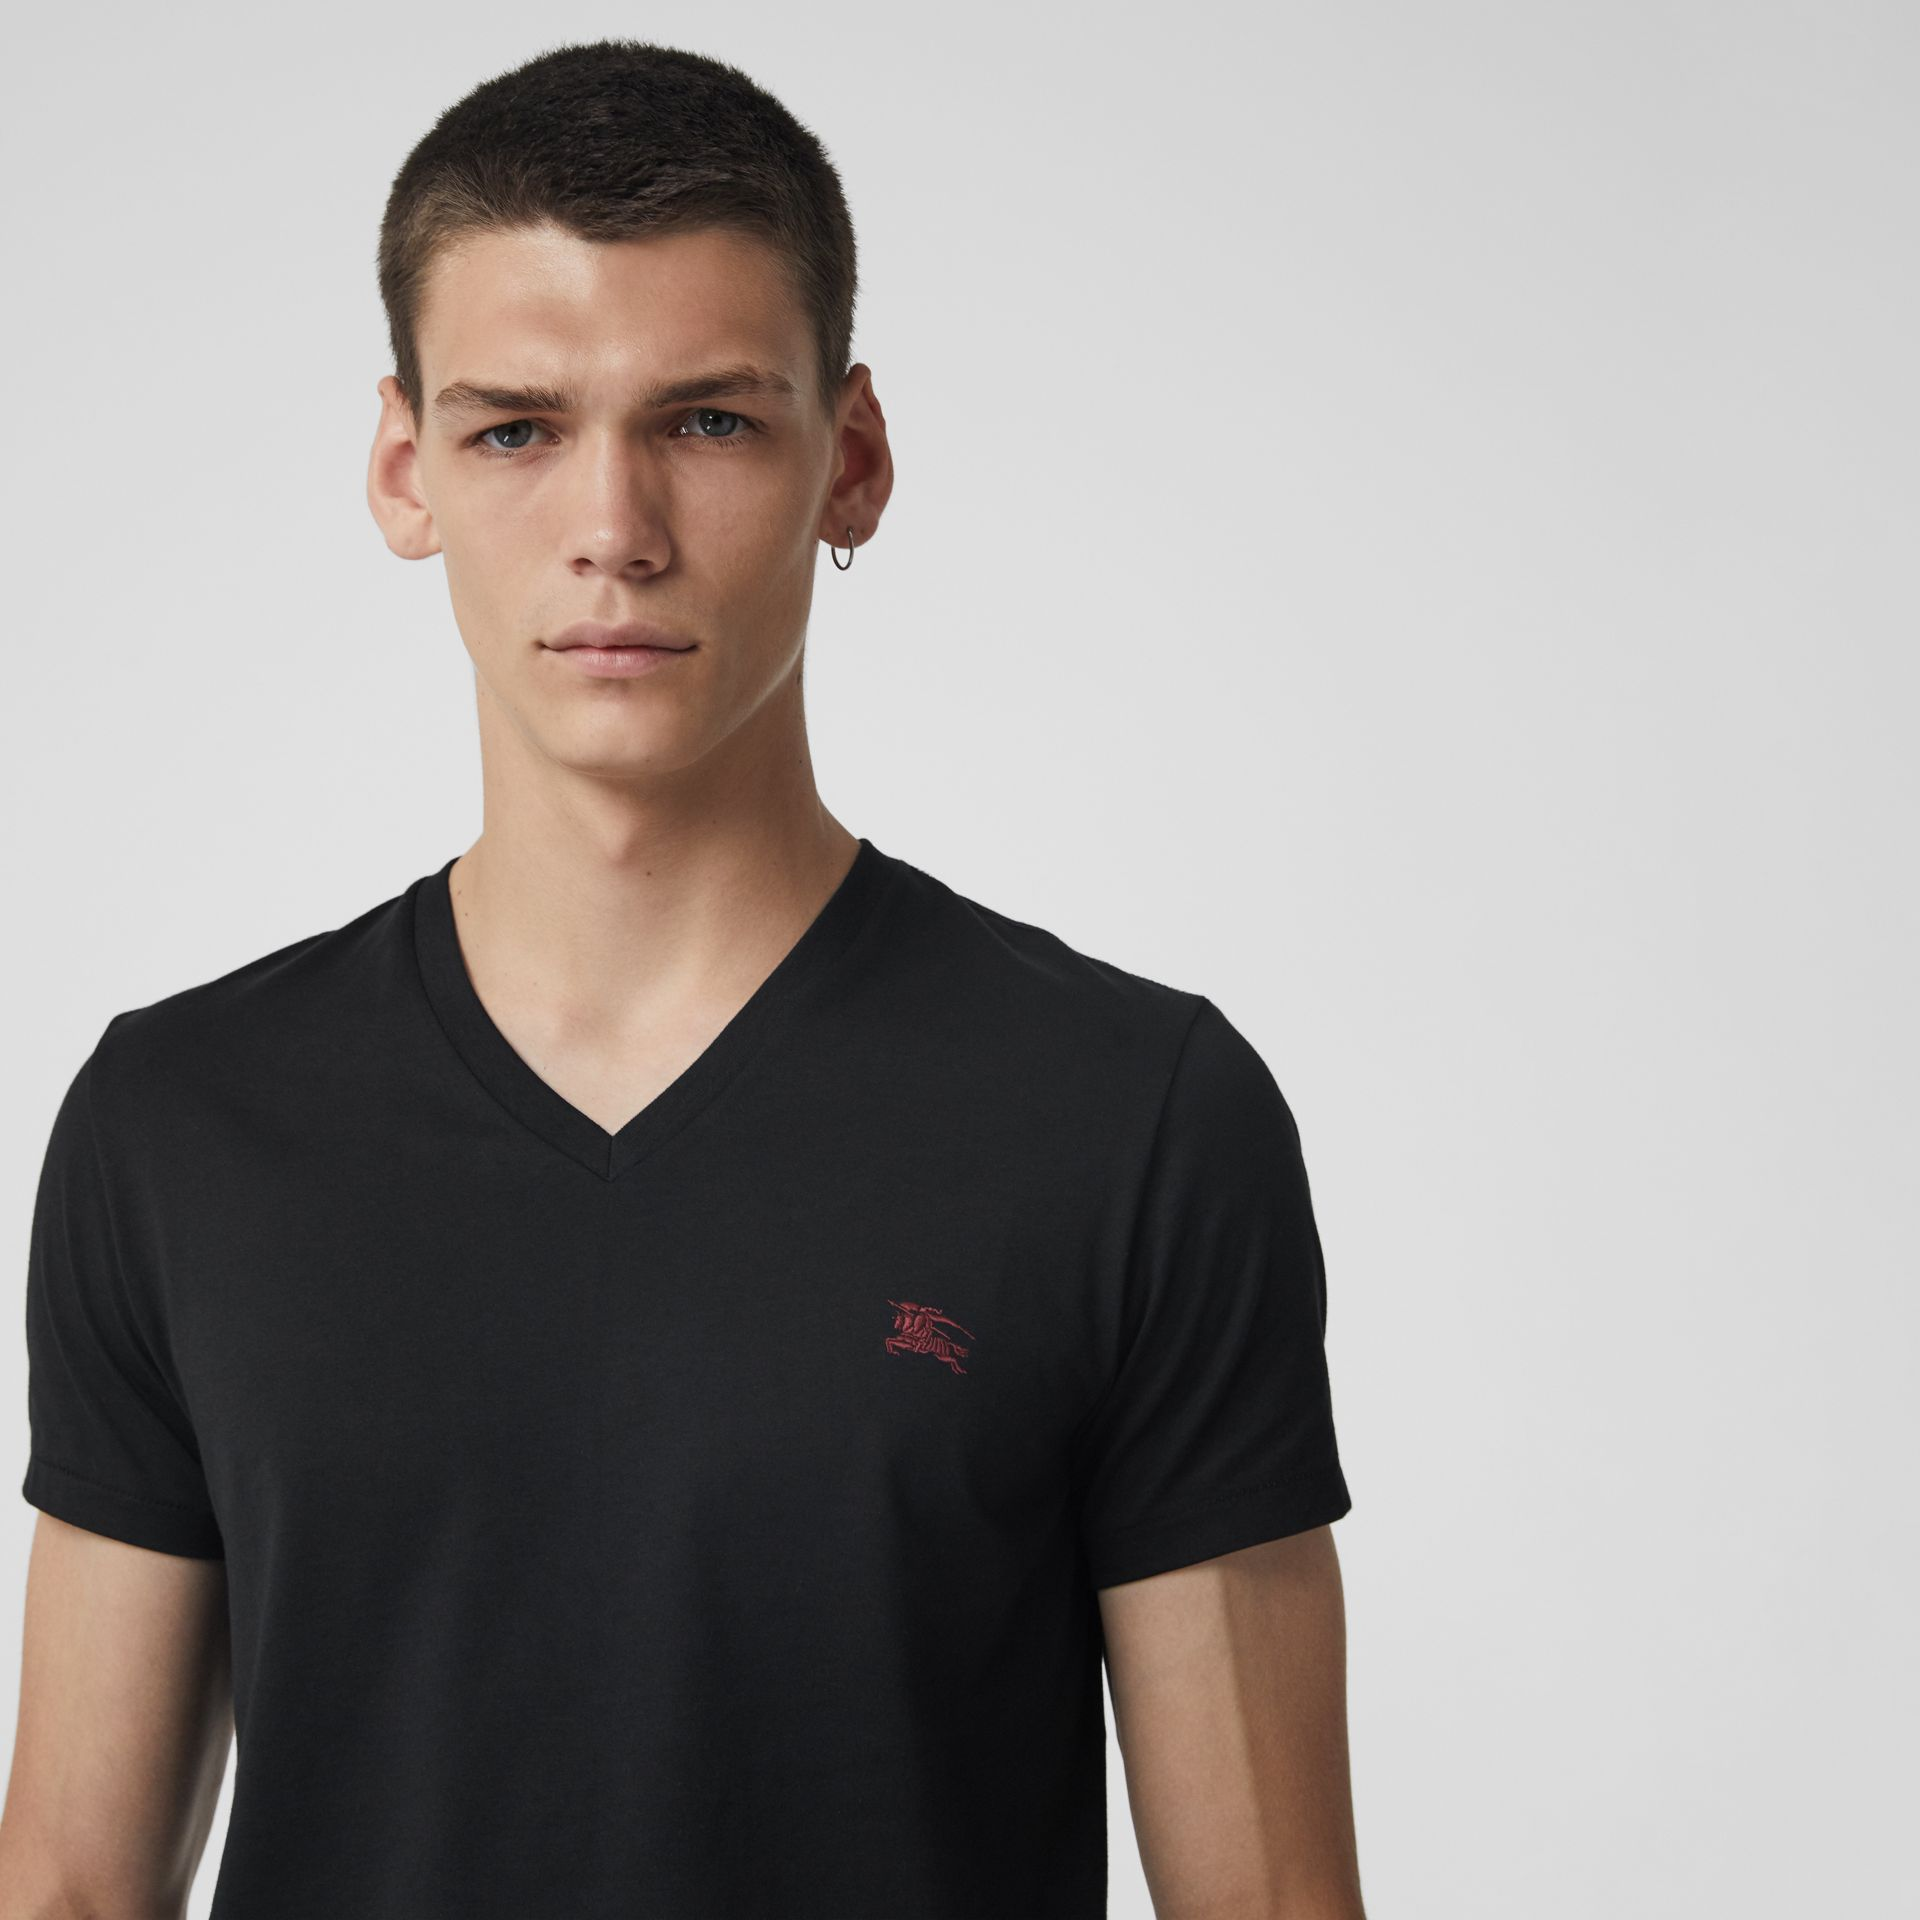 Cotton Jersey V-neck T-shirt in Black - Men | Burberry - gallery image 1